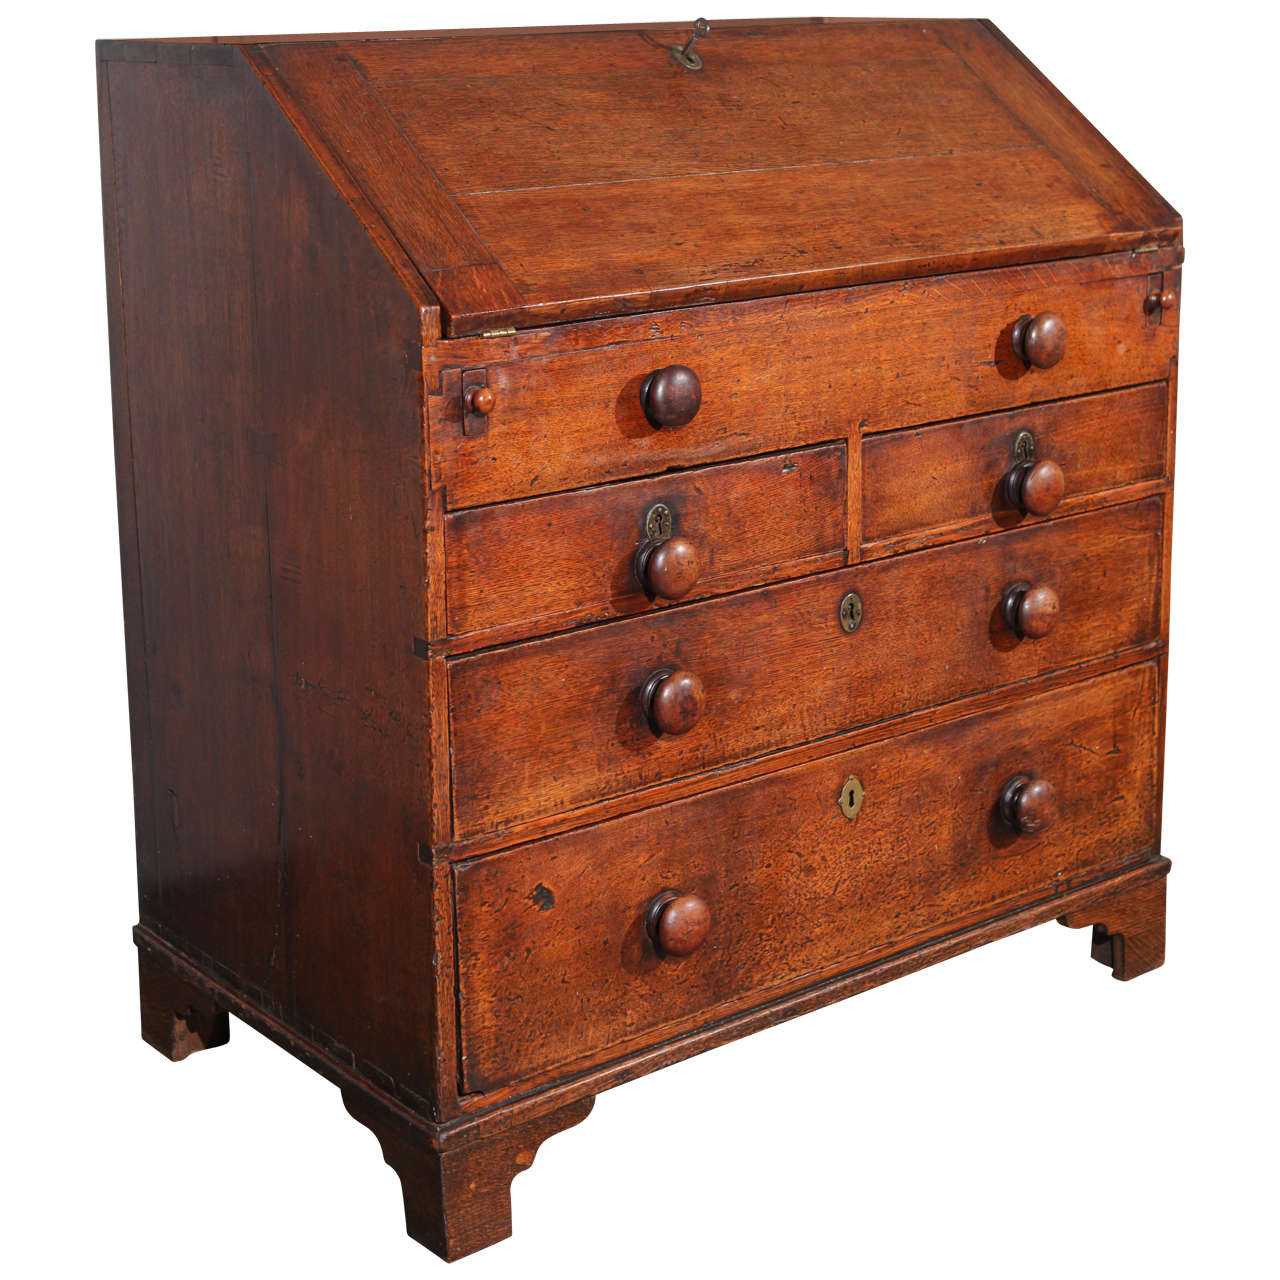 george ii bureau or slant front desk for sale at 1stdibs. Black Bedroom Furniture Sets. Home Design Ideas